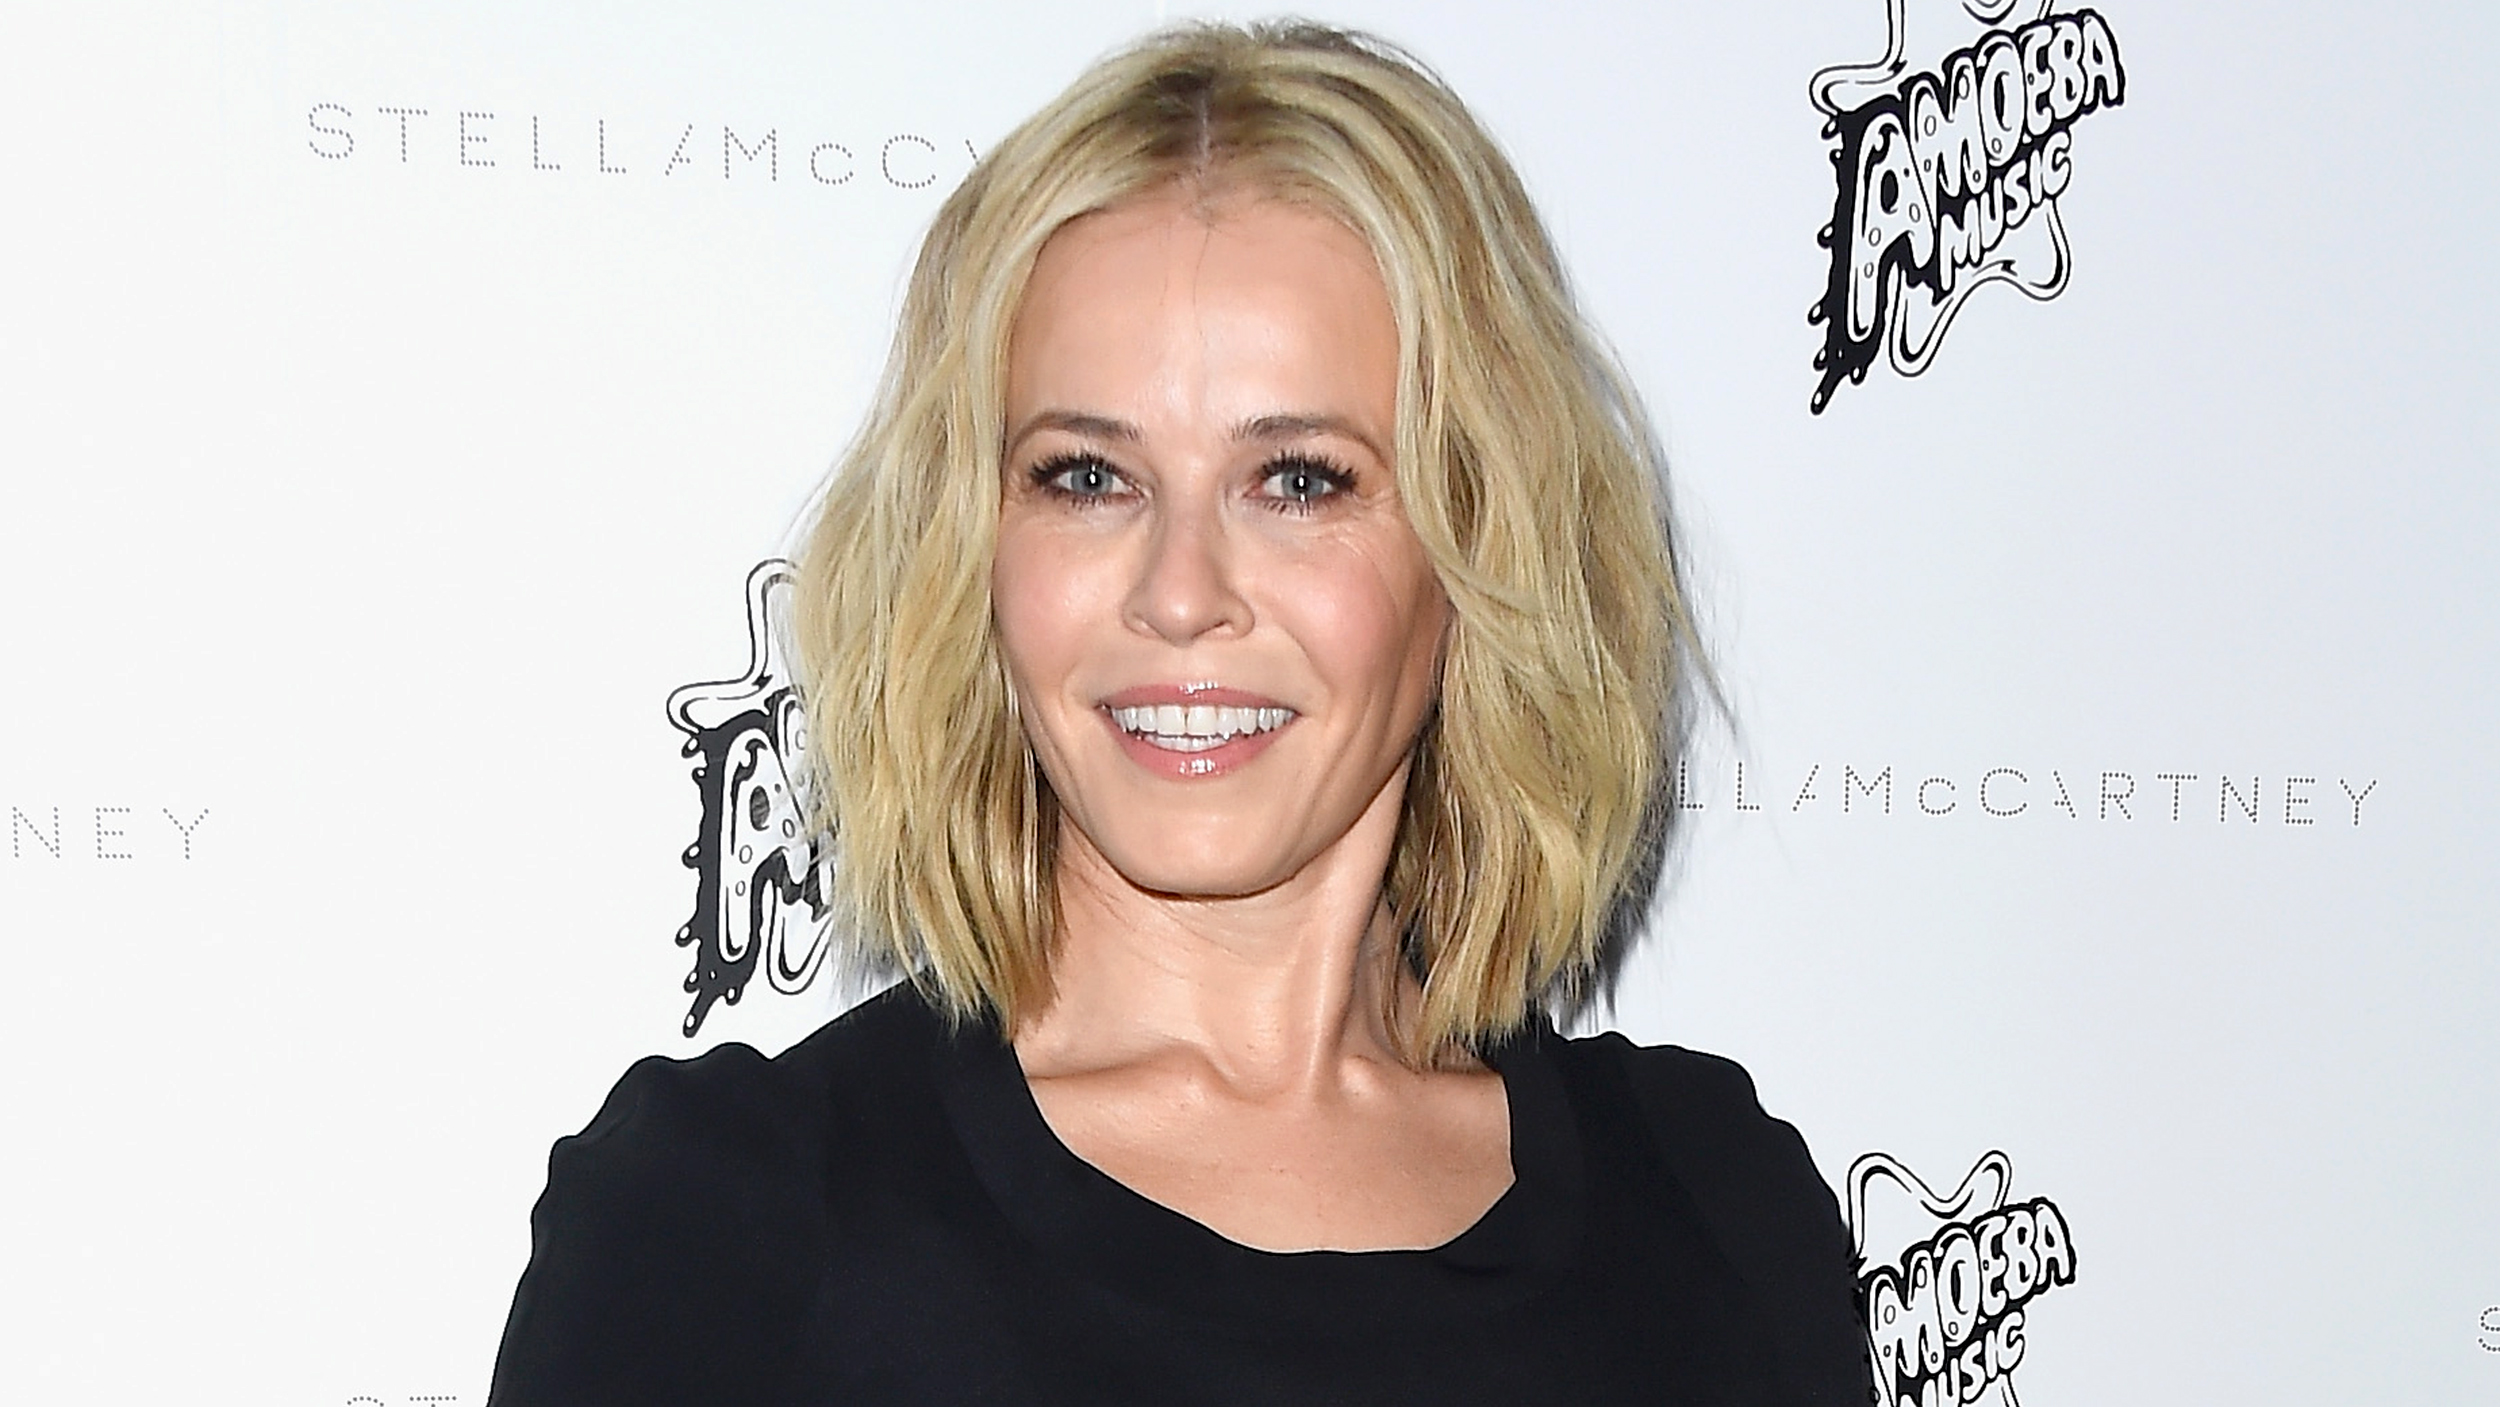 Chelsea Handler S Facial Treatment Results Stun Fans But May Be Misleading